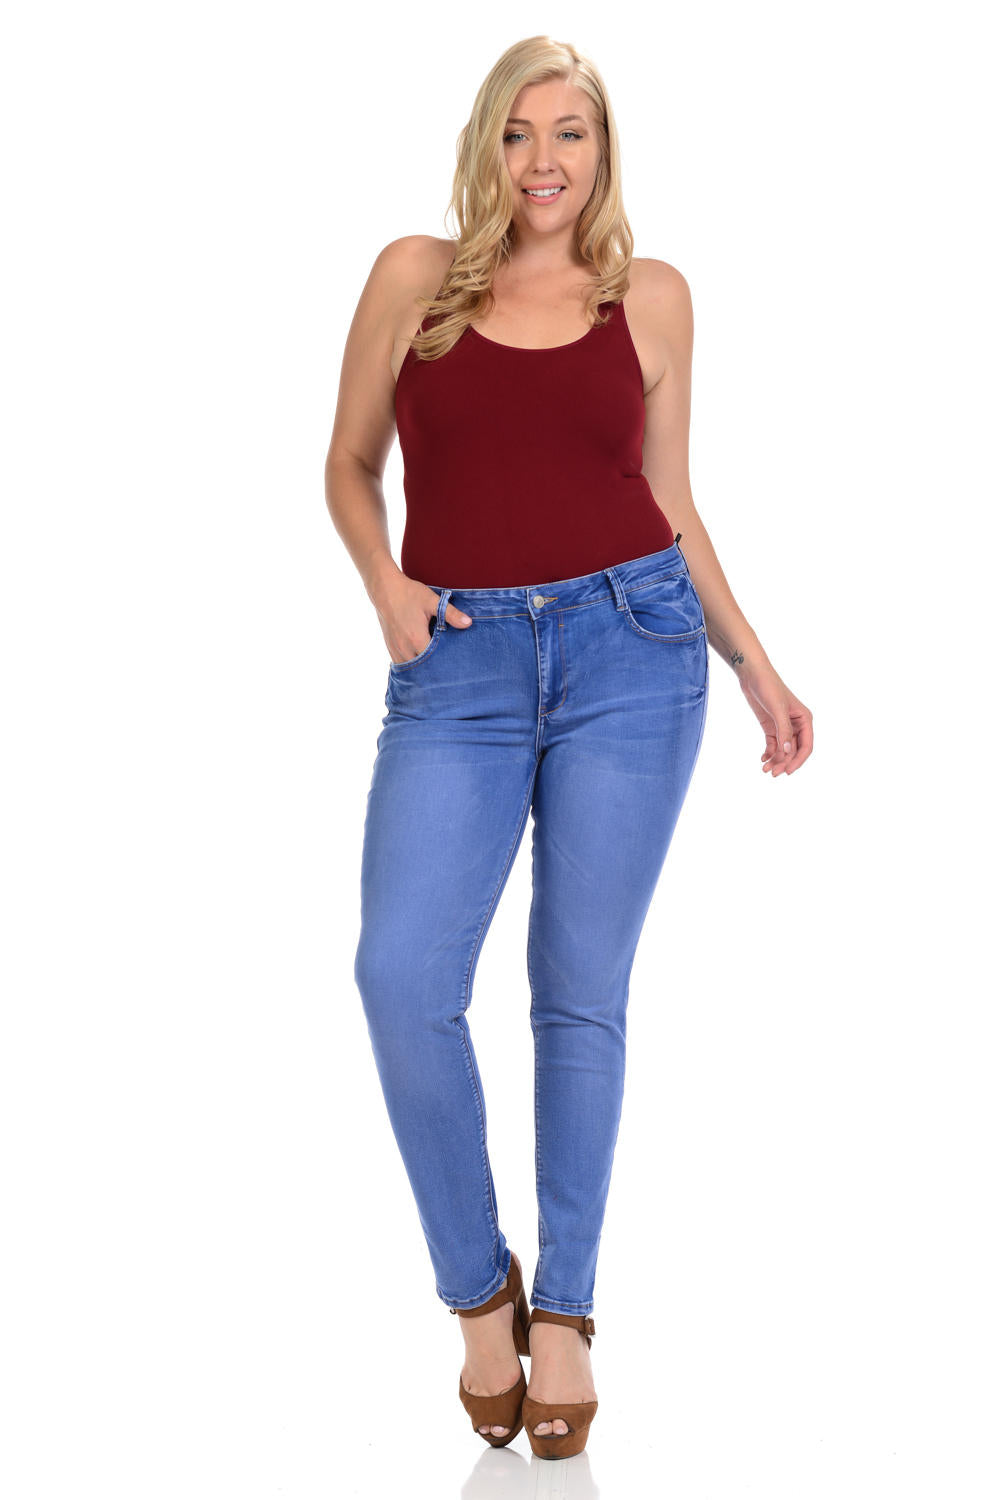 Sweet Look Premium Edition Women's Jeans - Plus Size - High Waist - Skinny - Style A282